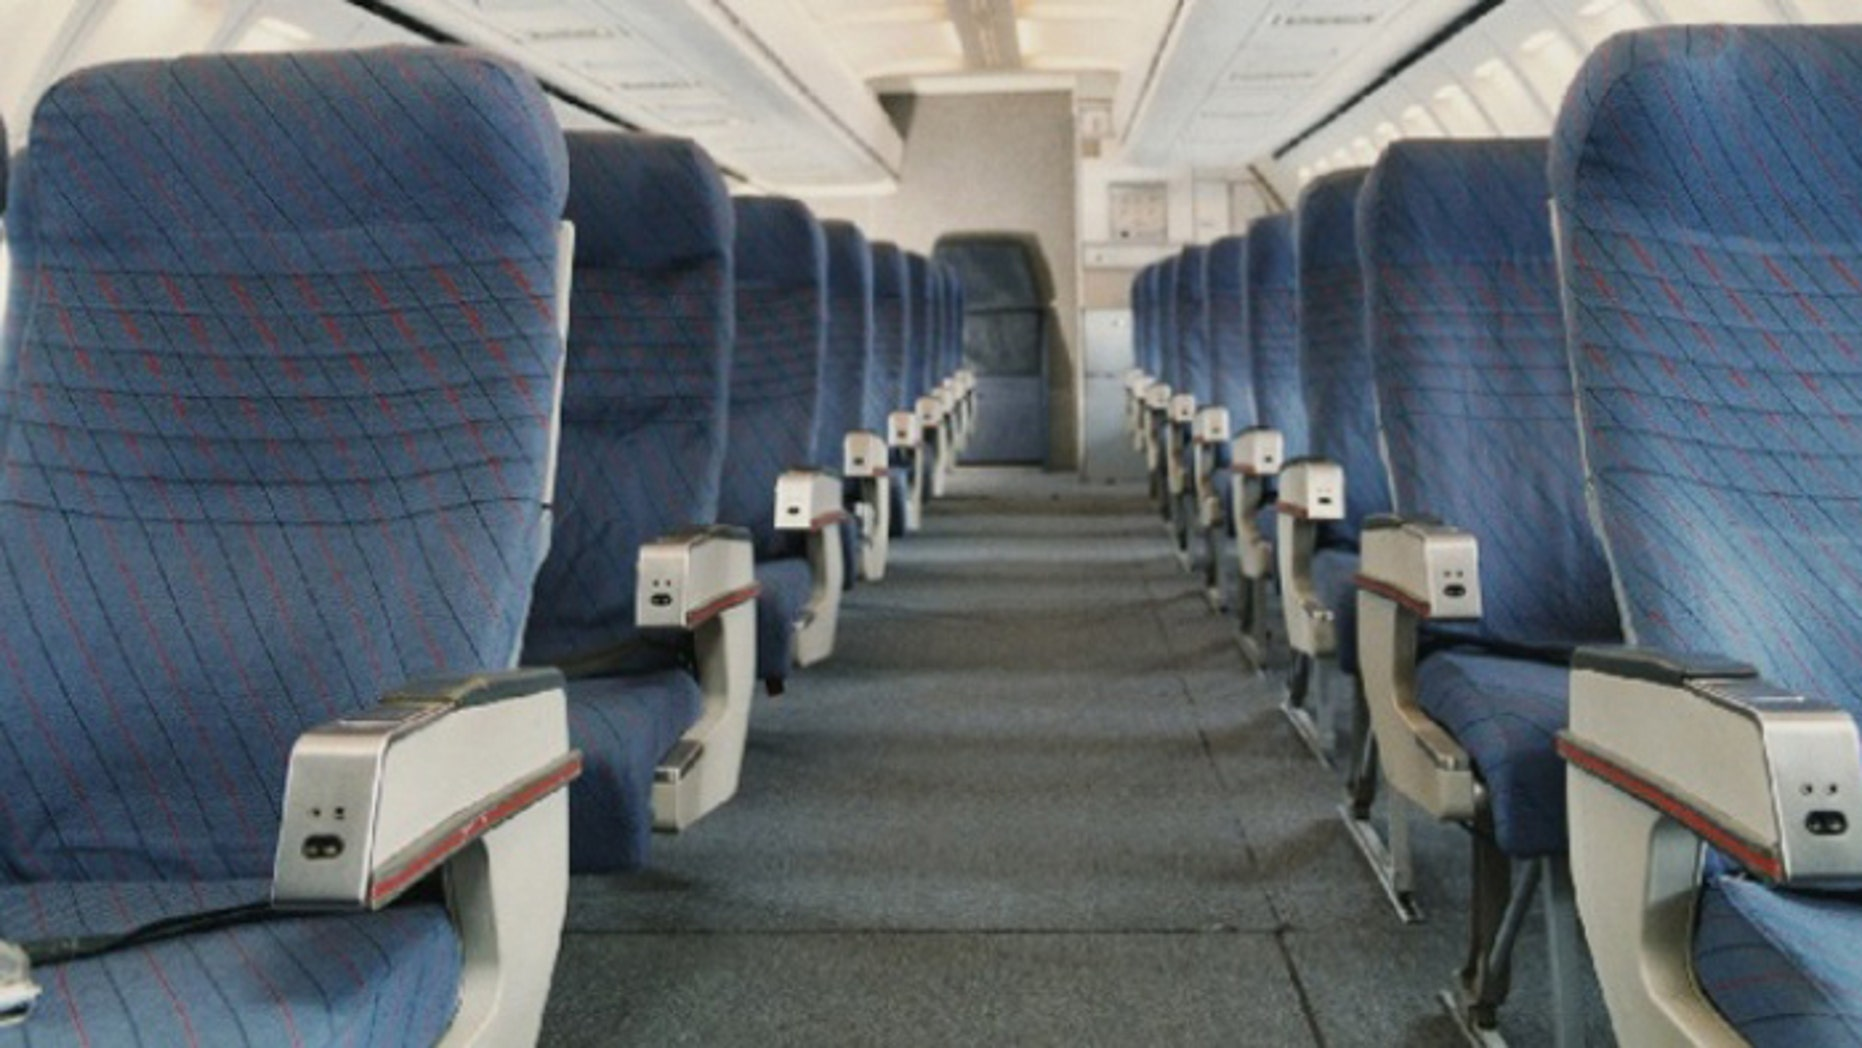 Airplane seats aren't made to accommodate 425-pound passengers. (AP)